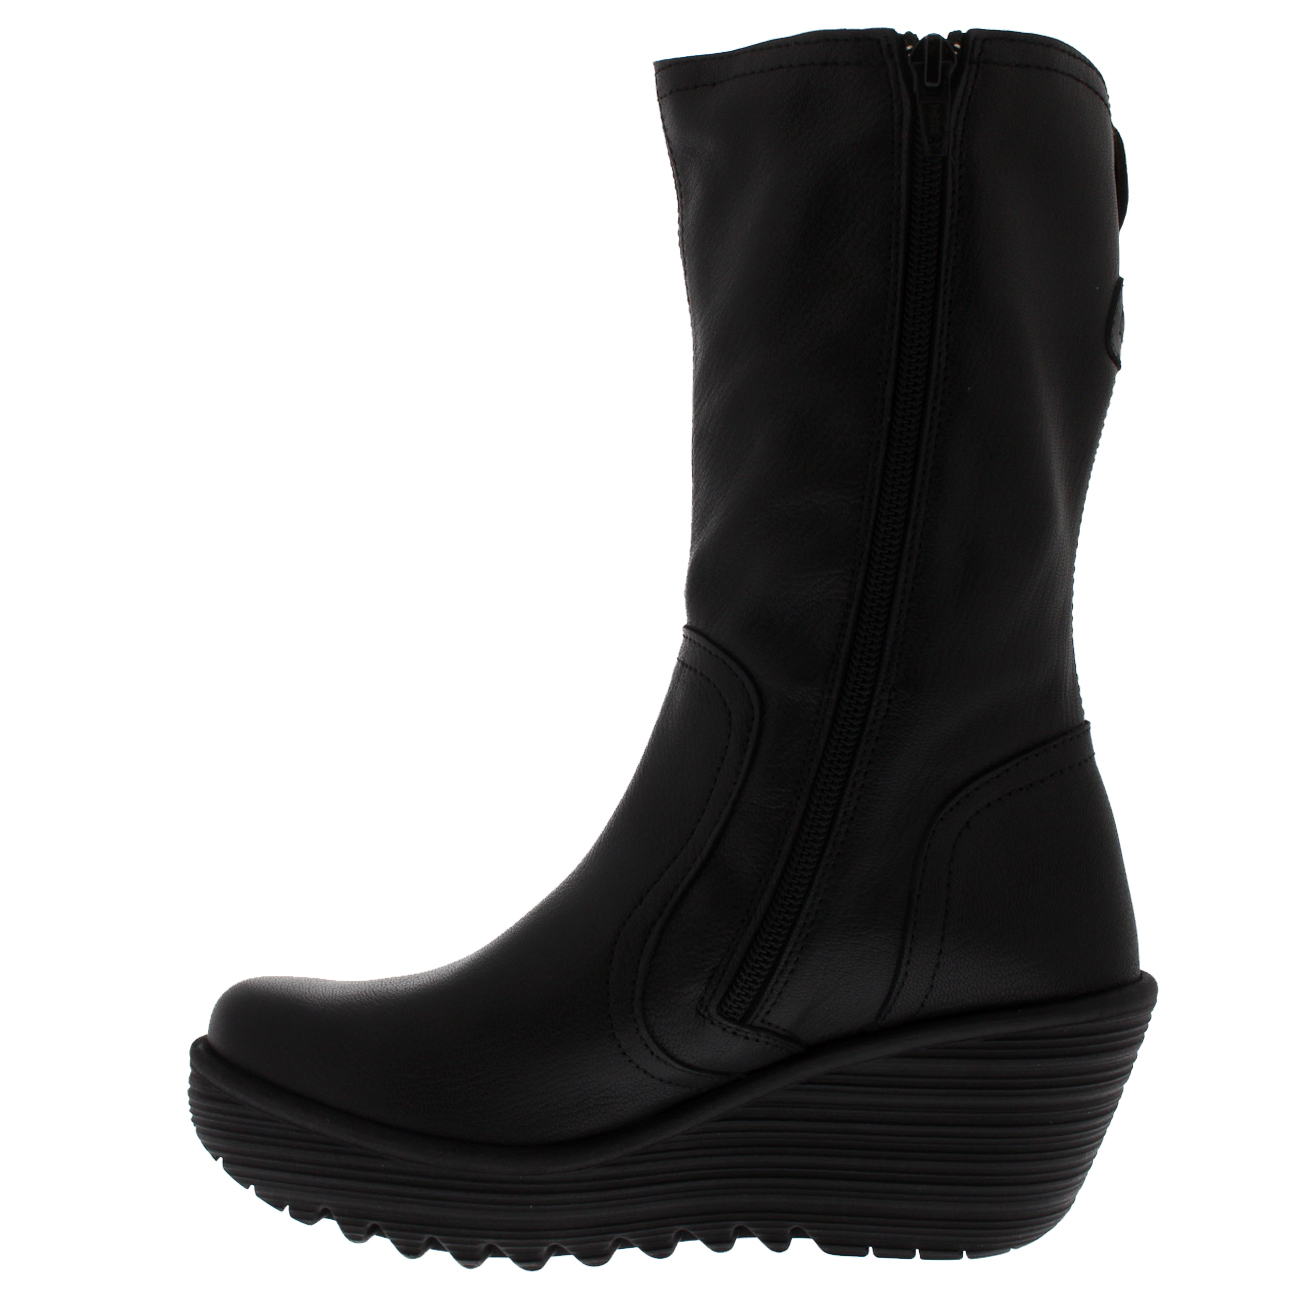 de044164c74c Details about Womens Fly London Yups Warm Black Wedge Heel Winter Mid Calf  Leather Boot 5-11